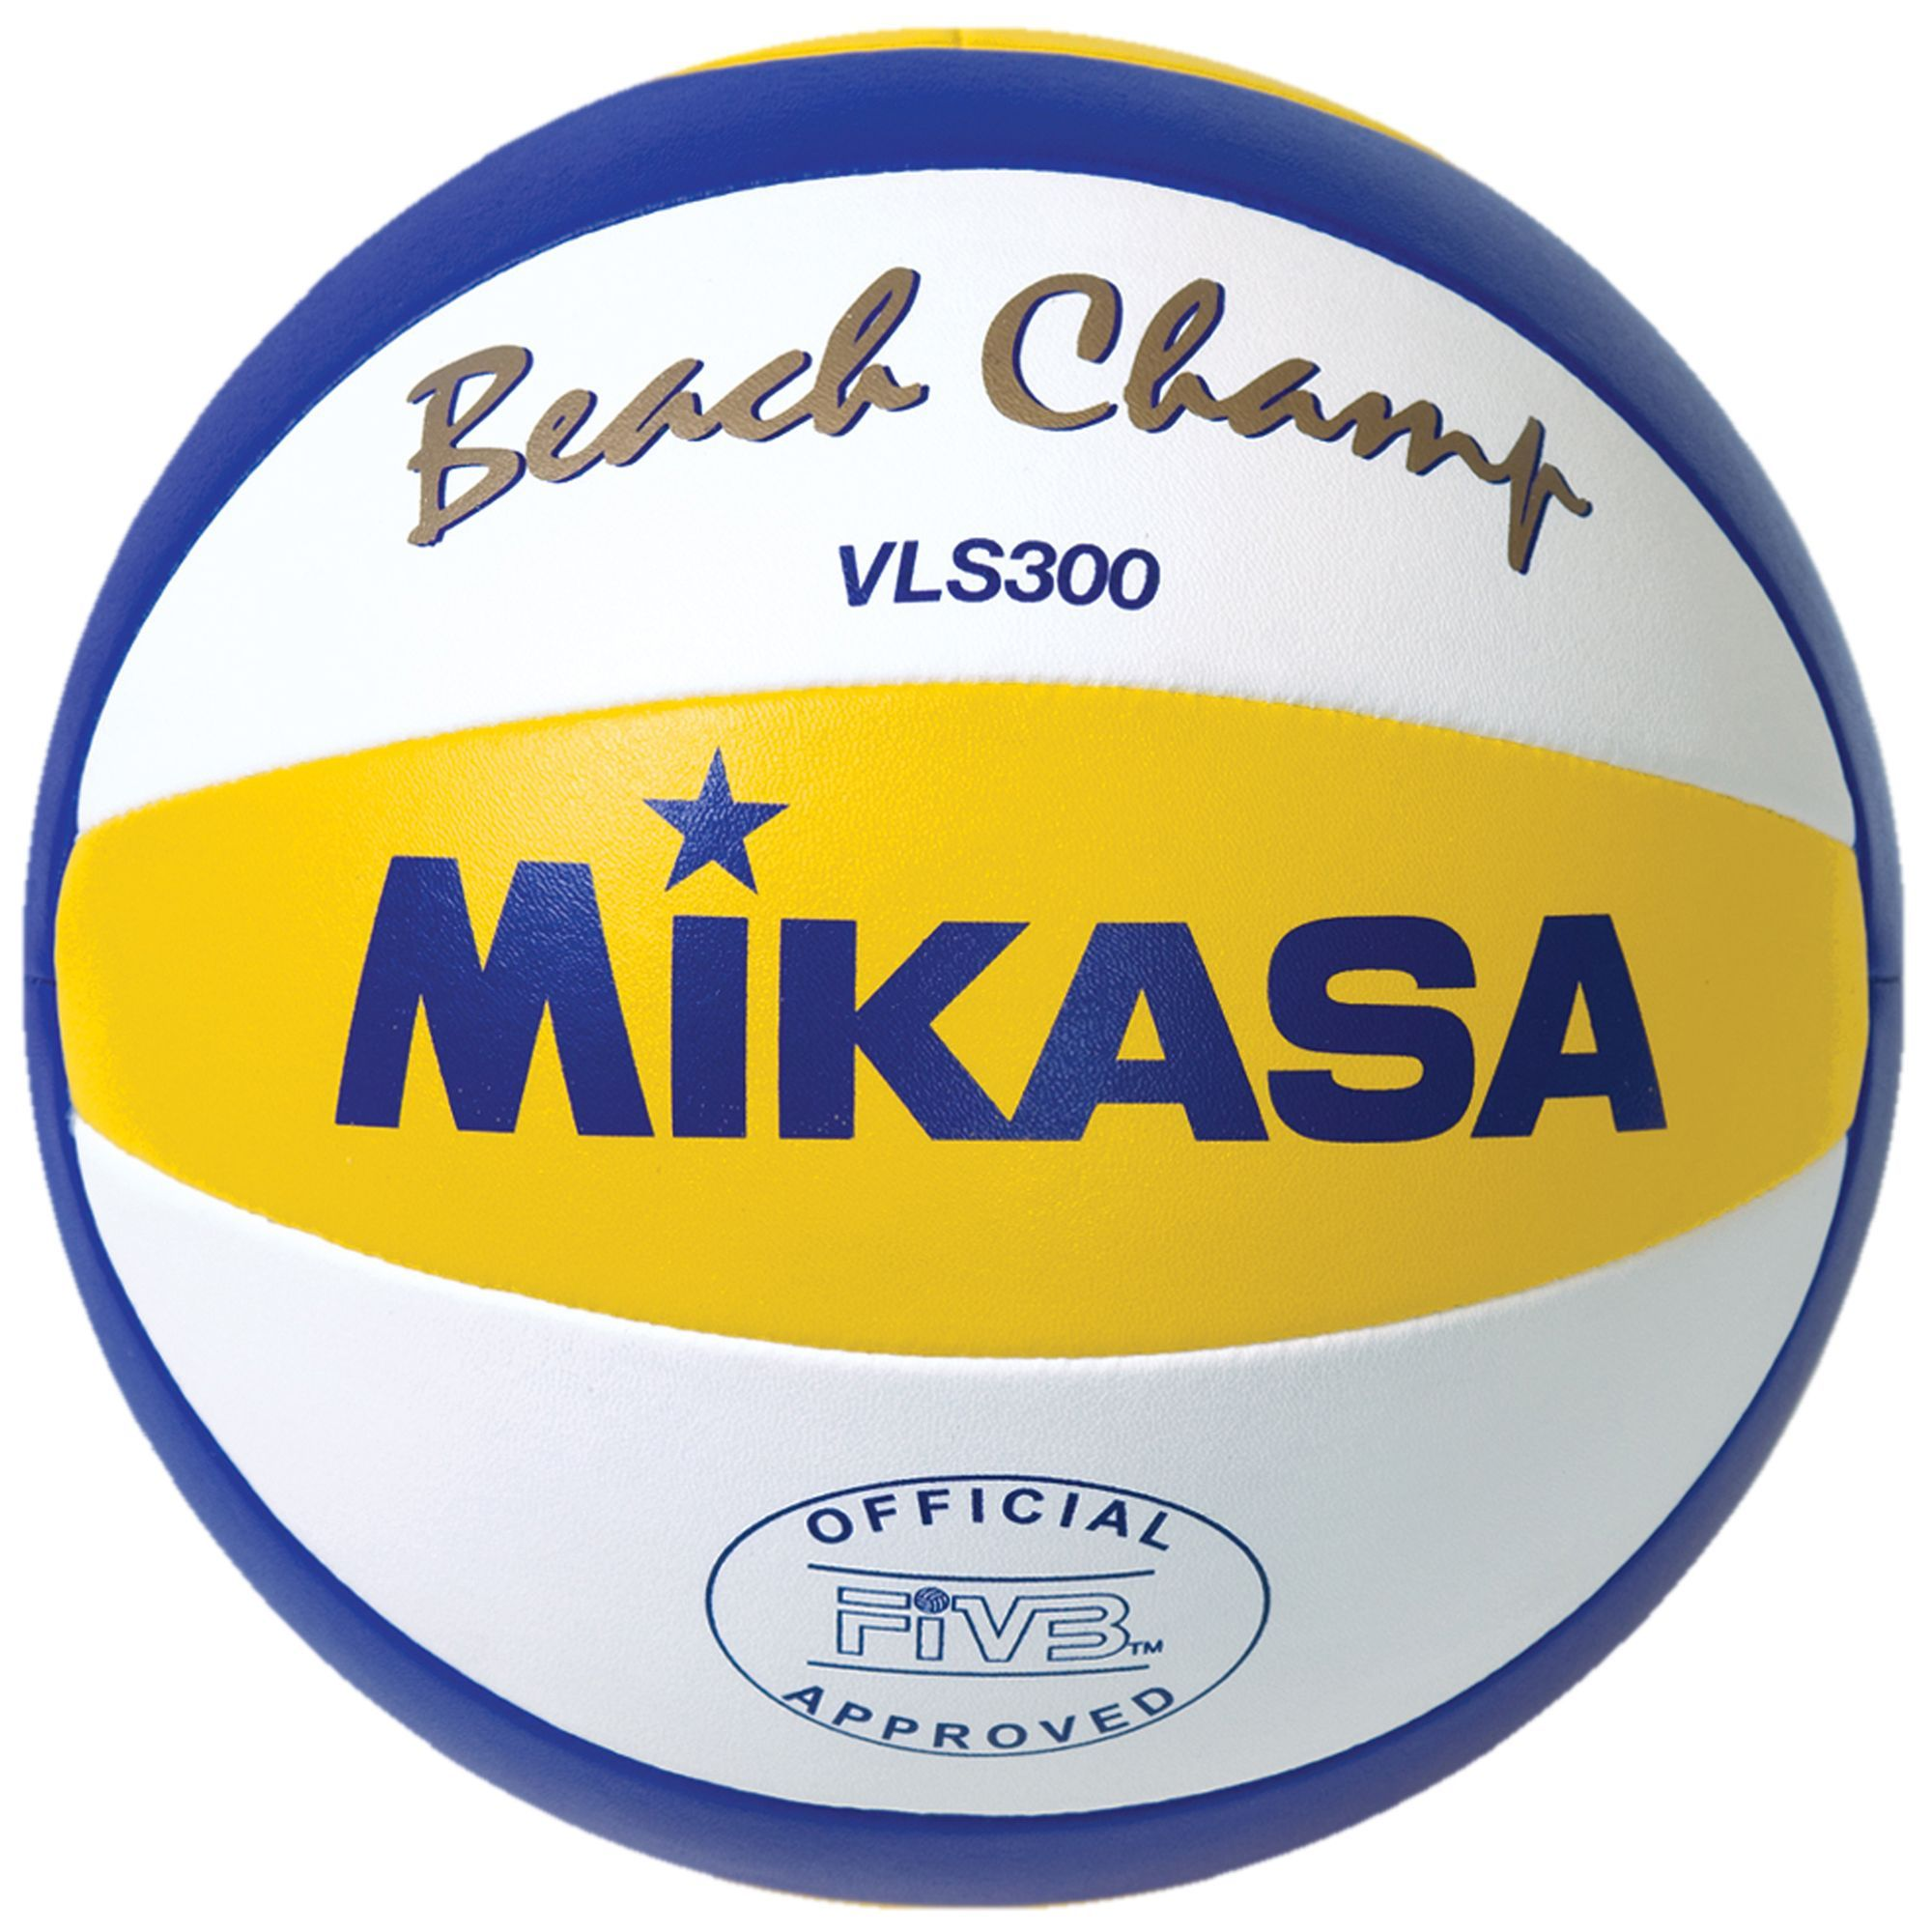 Mikasa Official Fivb Beach Volleyball Size Small In 2020 Beach Volleyball Fivb Beach Volleyball Volleyballs